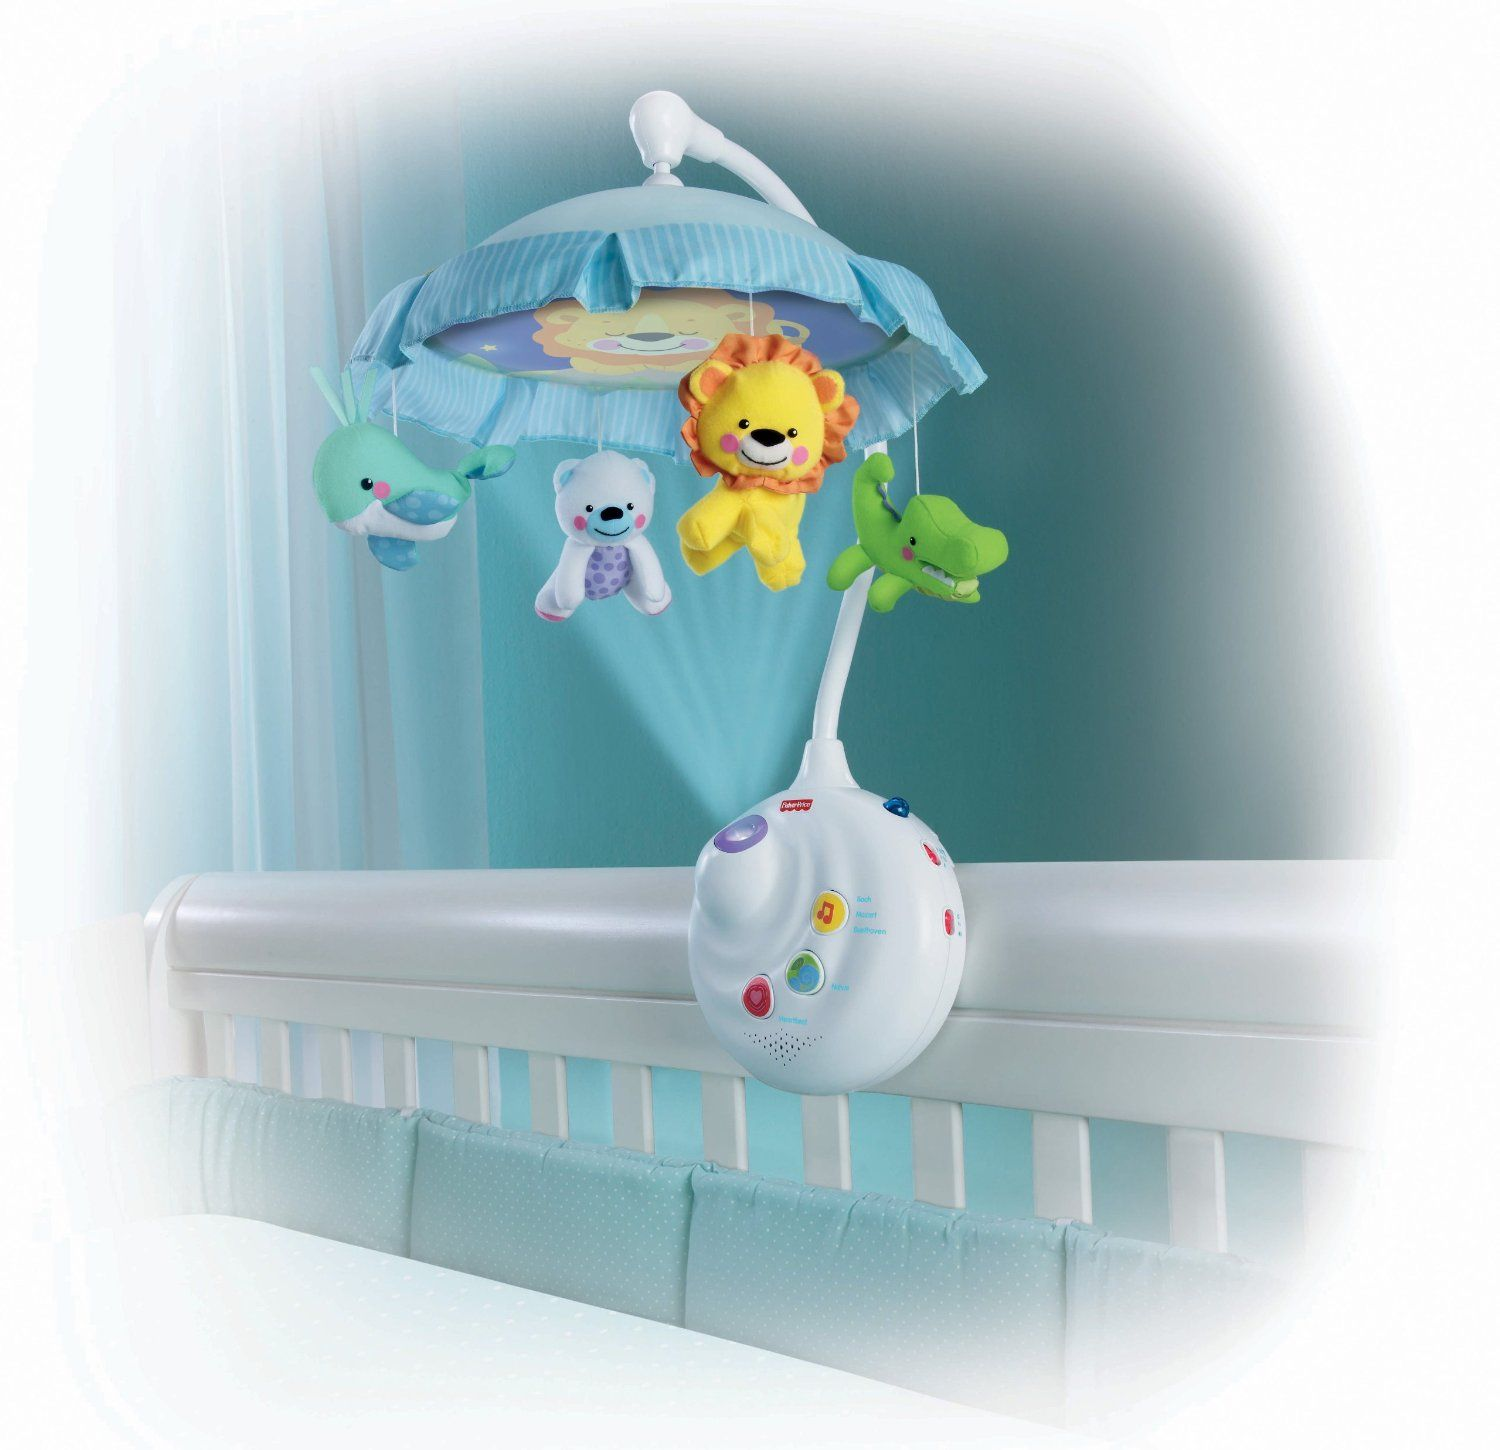 Fisher Price Precious Planet 2 in 1 Projection Mobile See more at